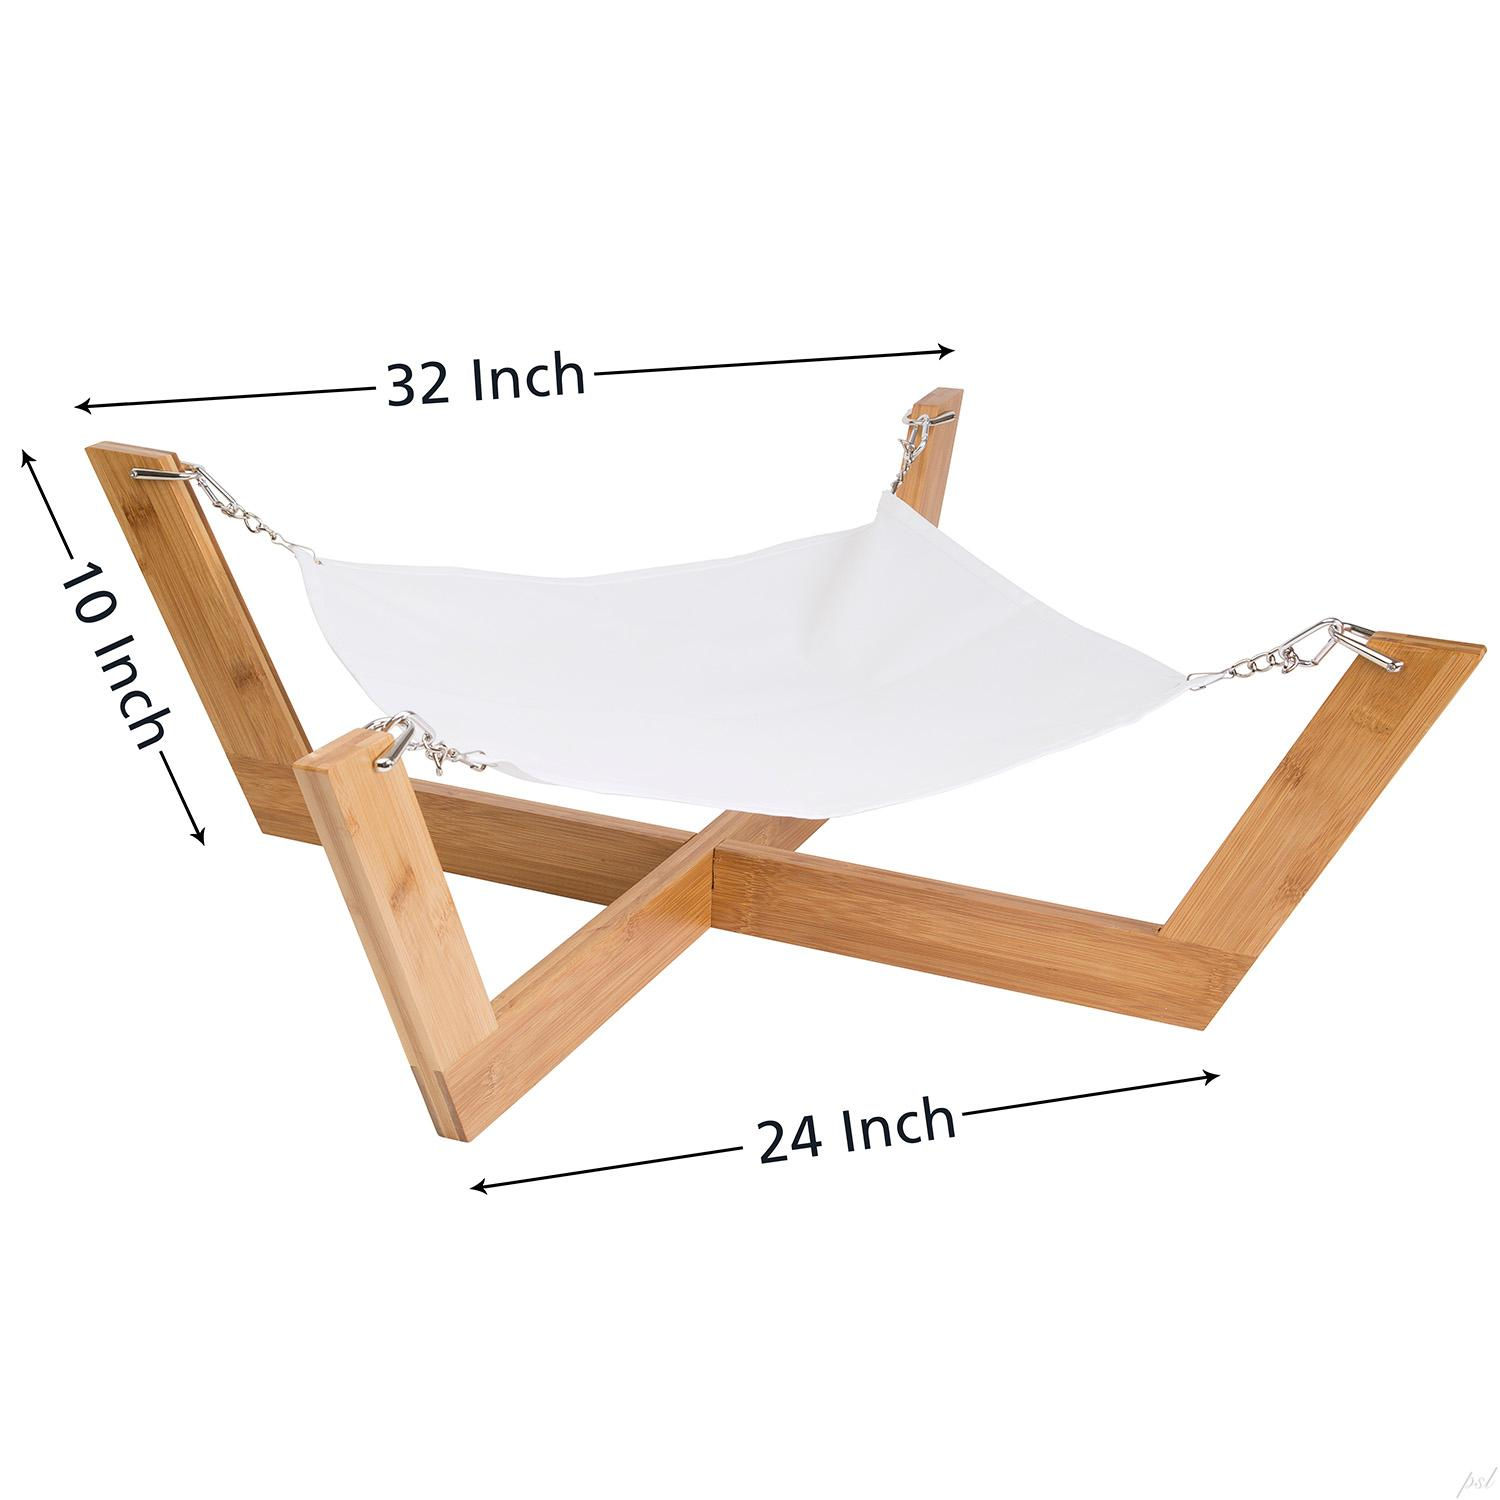 Dog Hammock Reviews